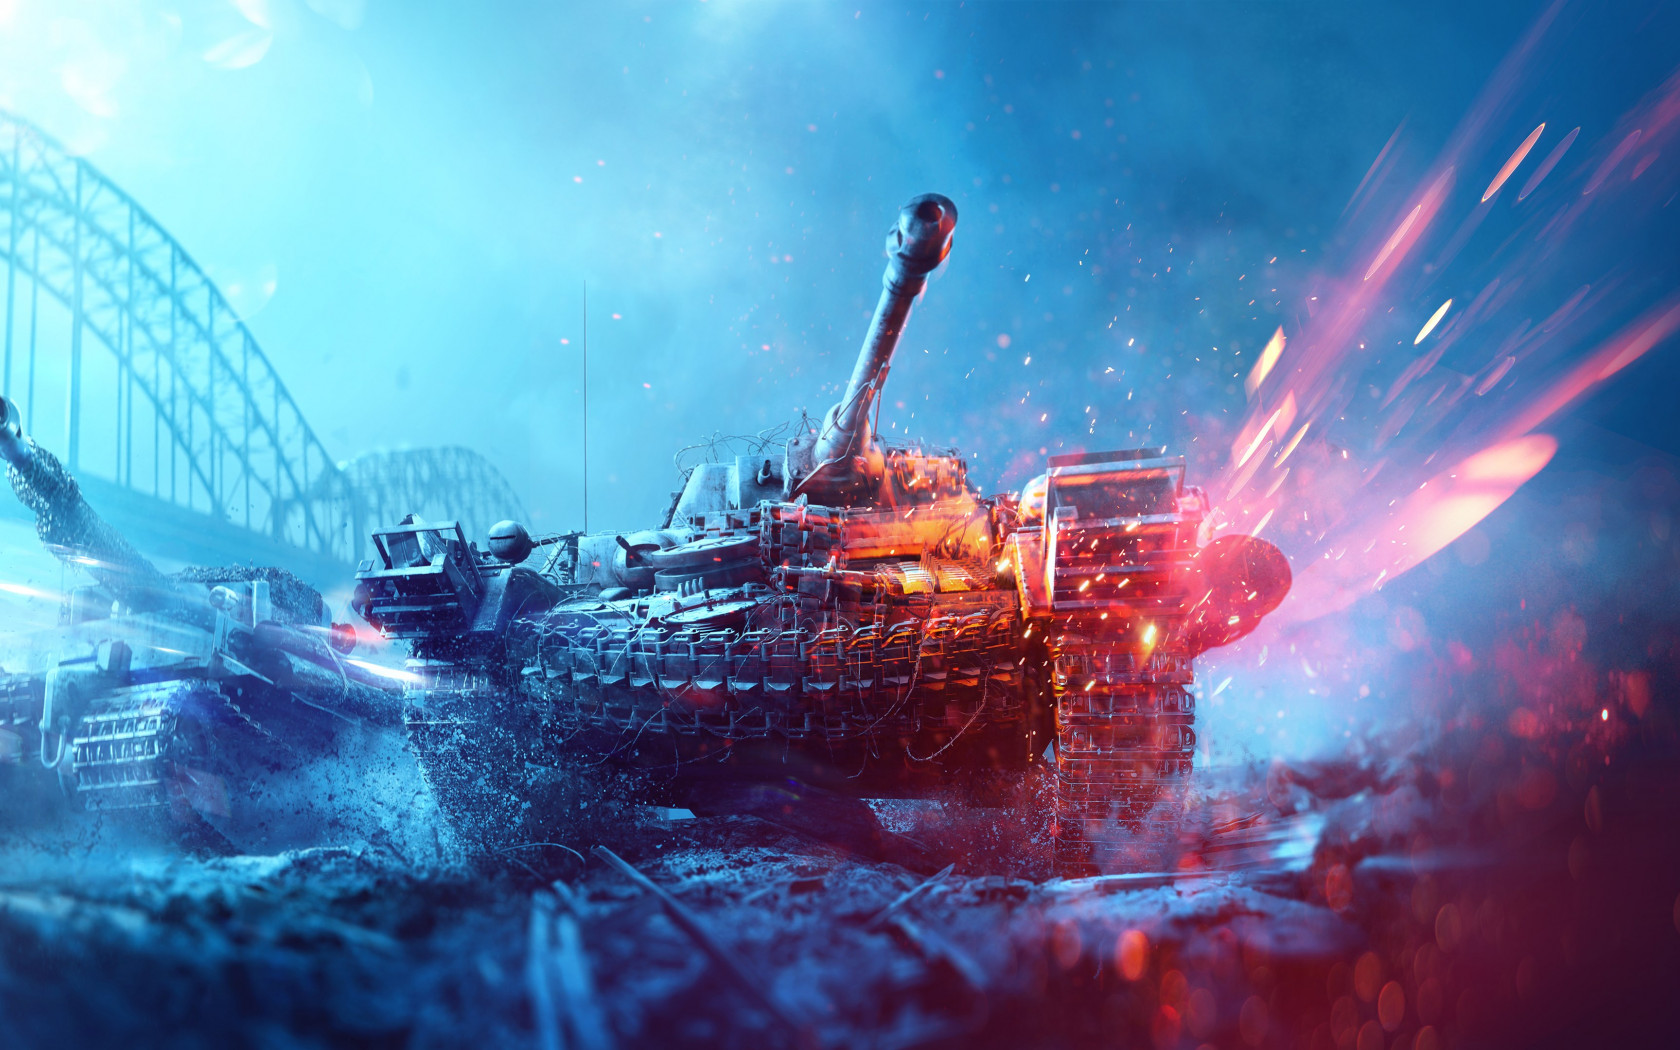 Battlefield 5 poster with tanks wallpaper 1680x1050